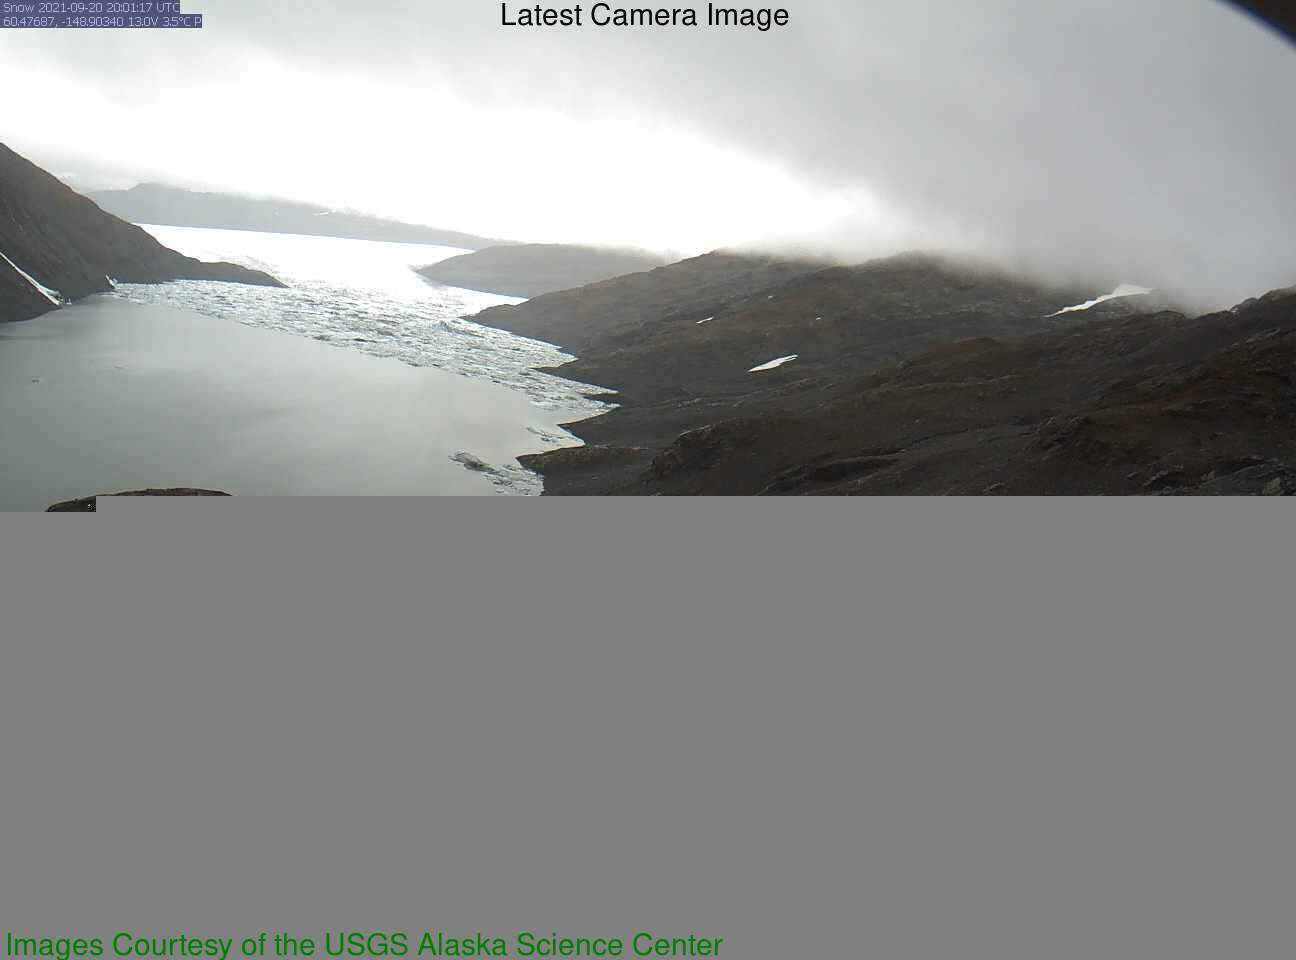 USGS has installed a new webcam at the Snow Glacier Dammed Lake